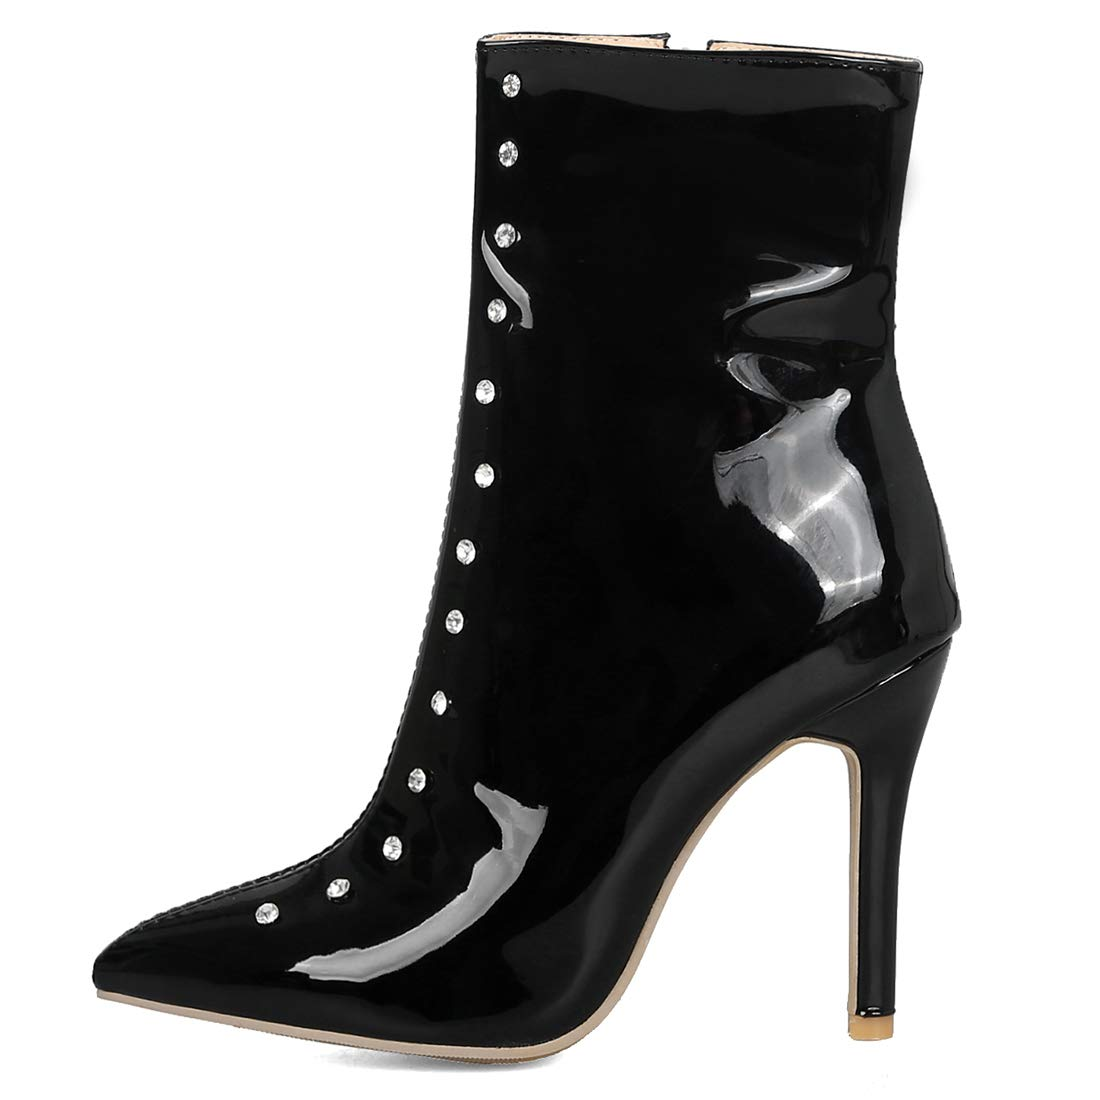 1a83265fa294 Amazon.com | Vitalo Womens High Heel Stiletto Patent Leather Diamante Ankle  Boots Pointed Toe Zip Up Booties | Ankle & Bootie